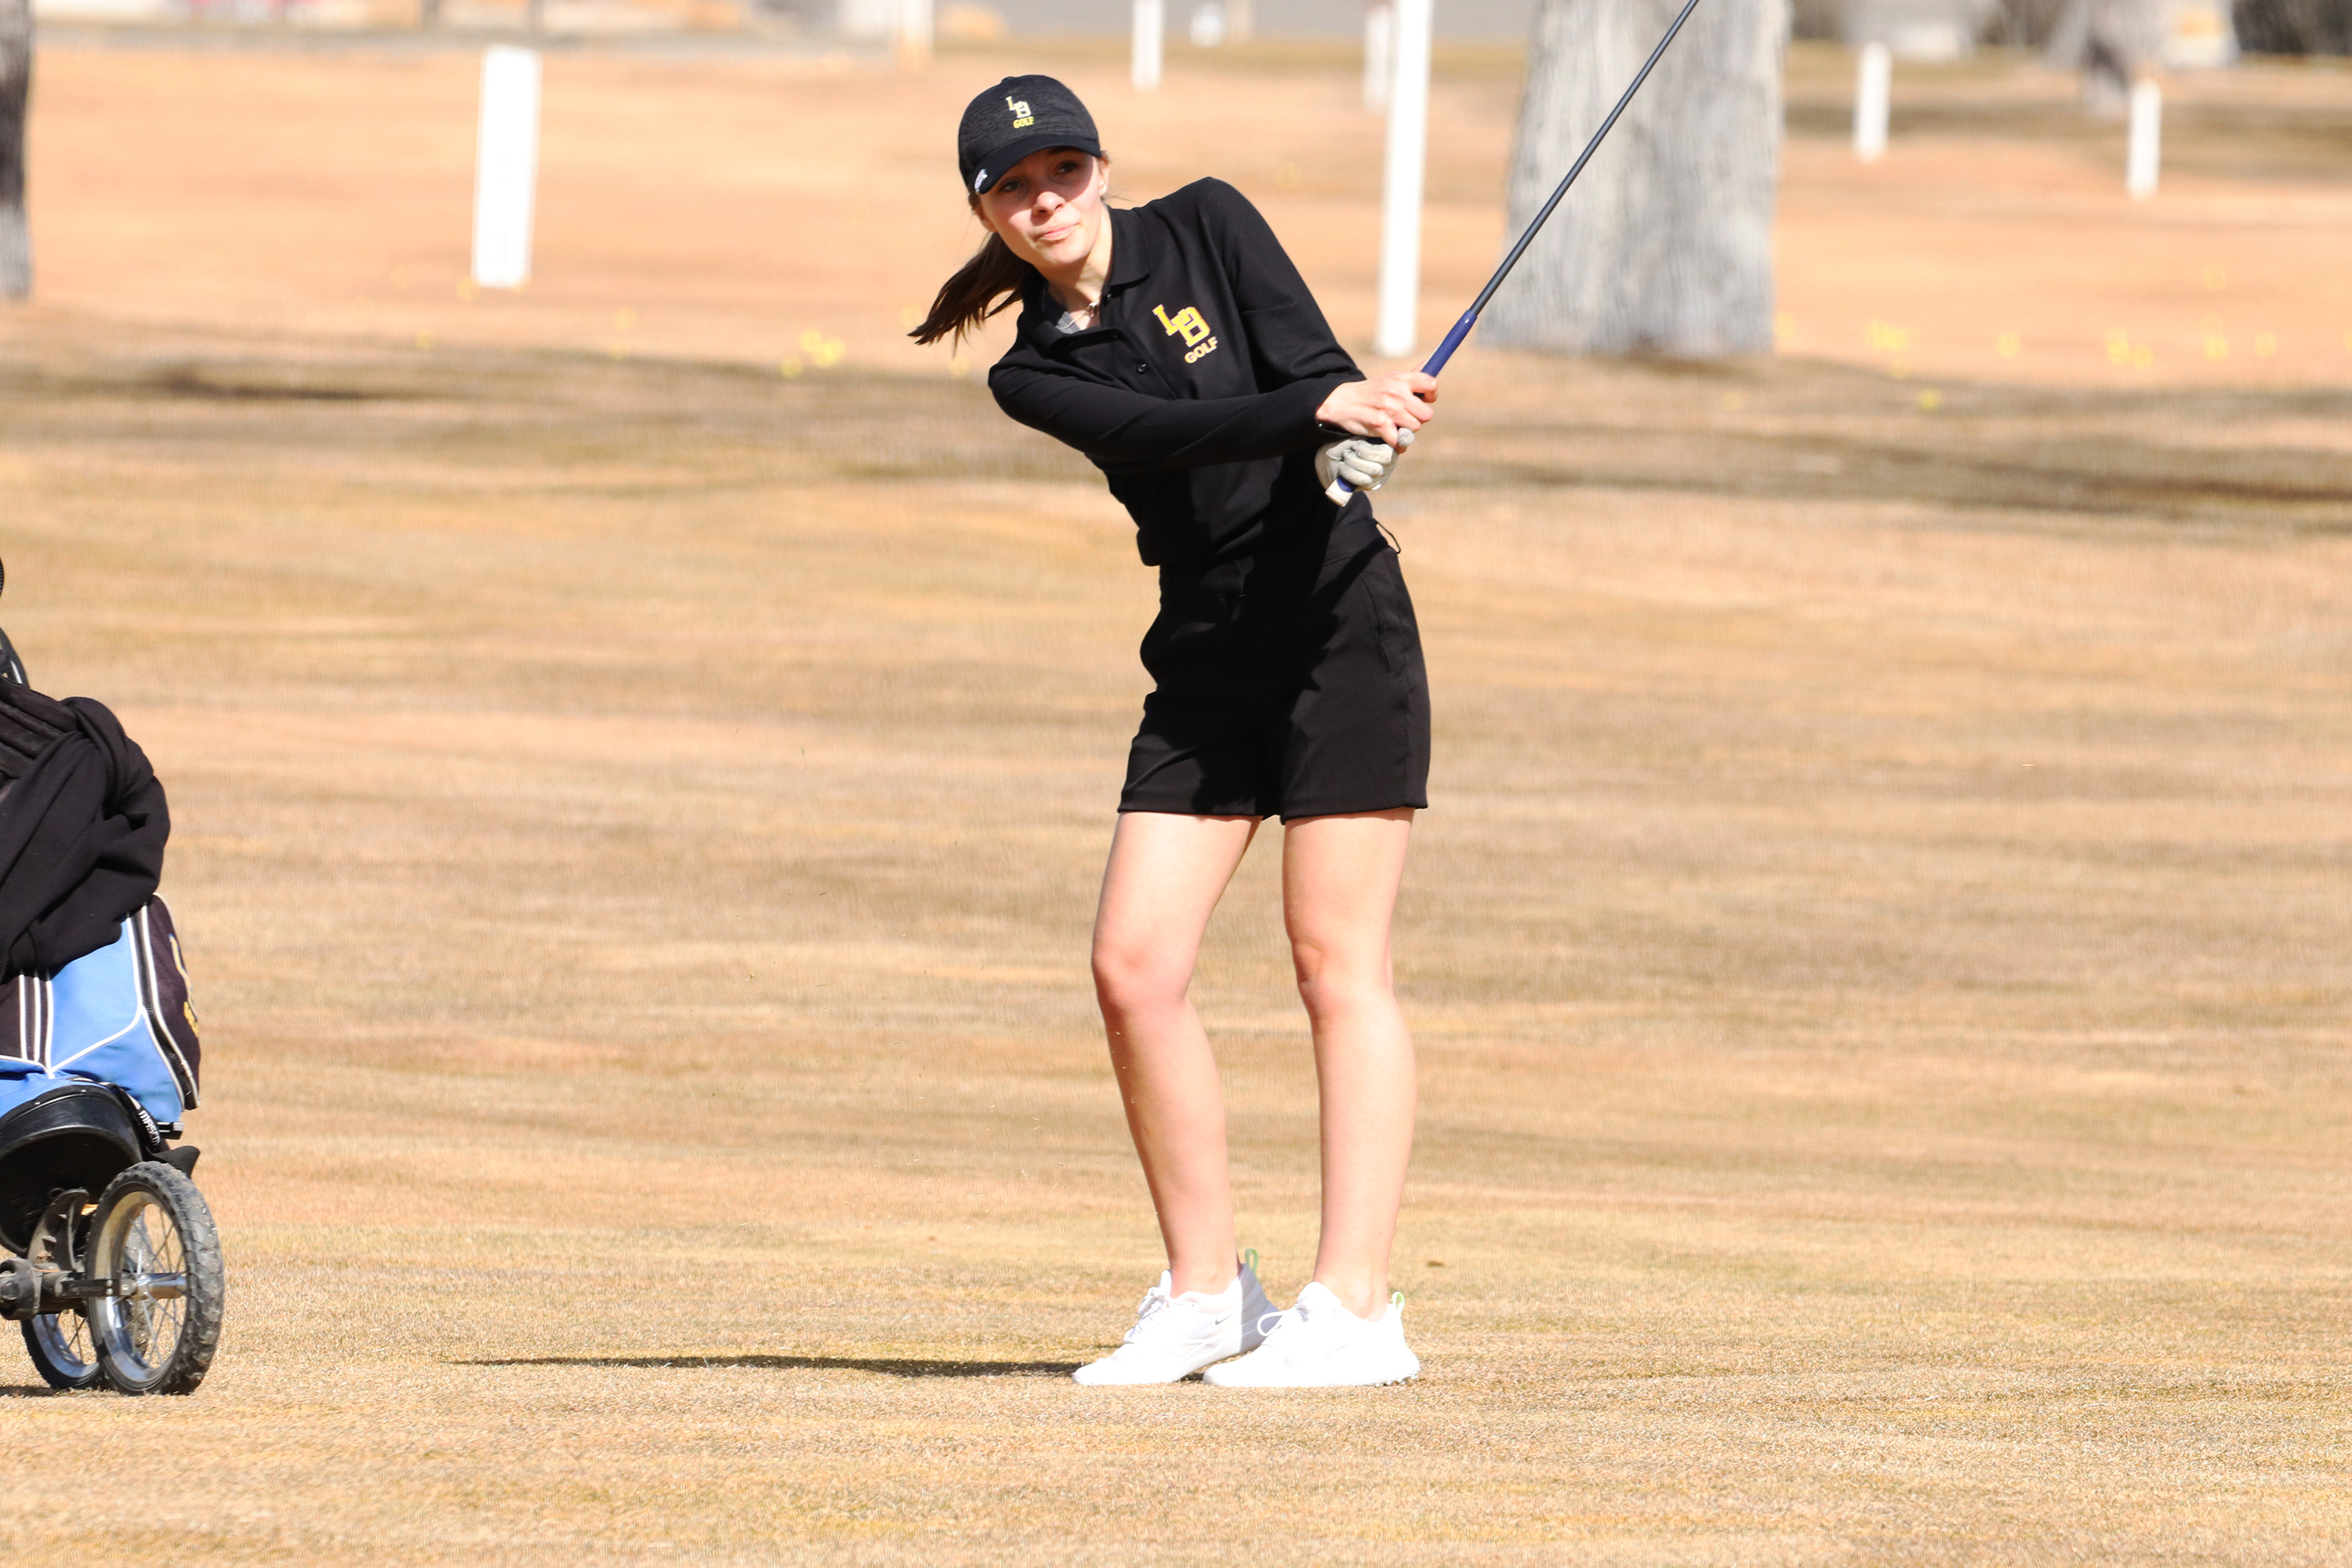 Kaitlyn Hales hits an approach shot from the fairway. /Ron Espinola • The Brand